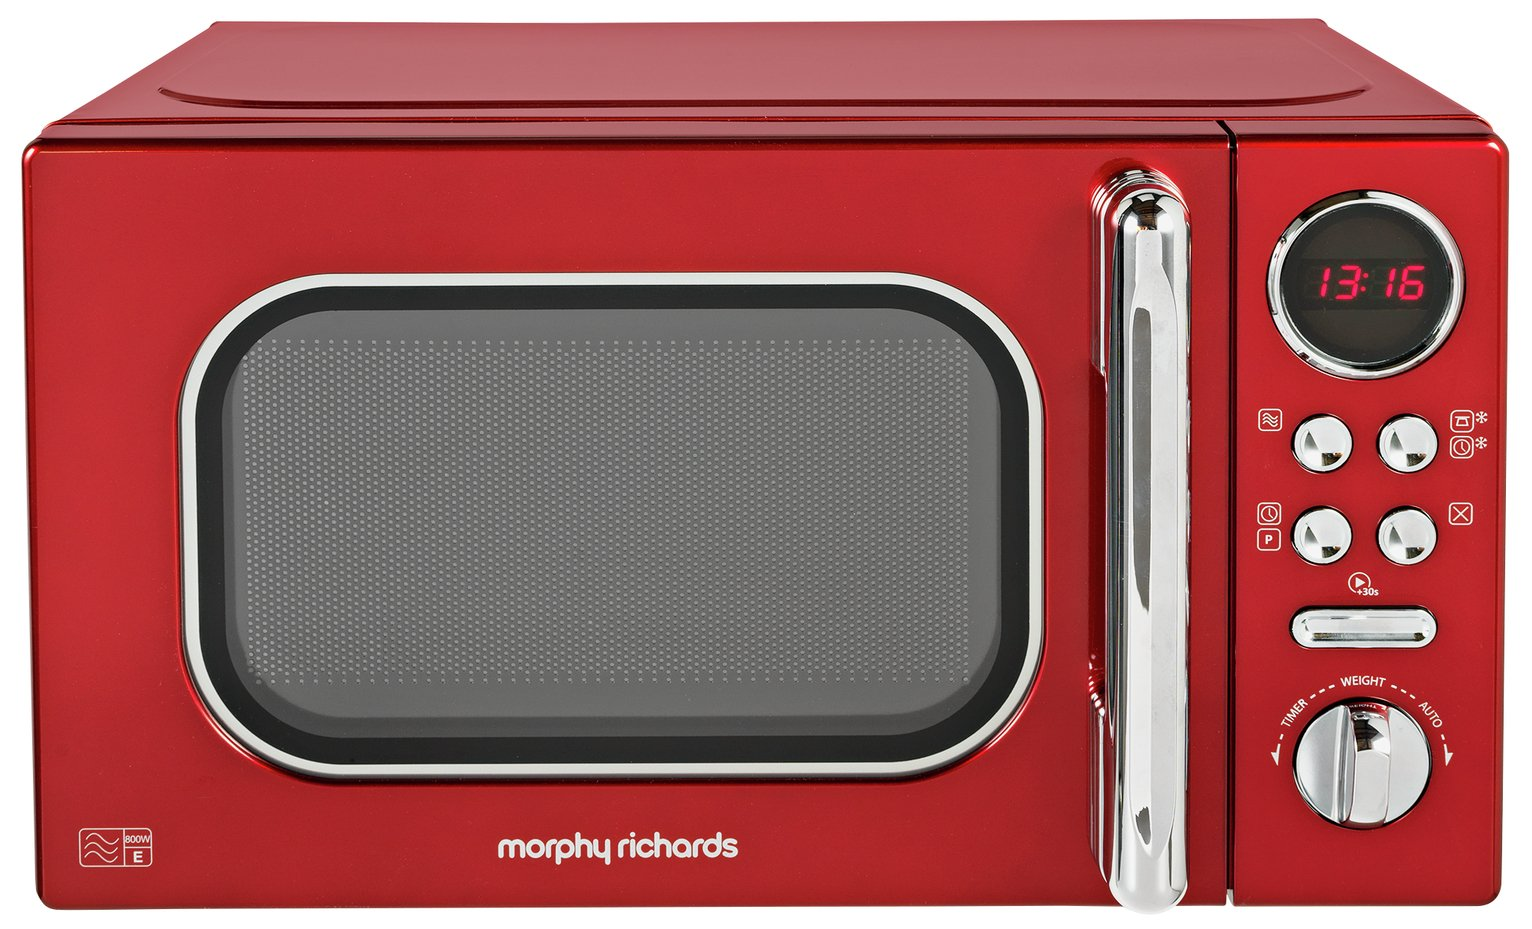 Morphy Richards Evoke Red Microwave 20L Solo 800w 511502 review